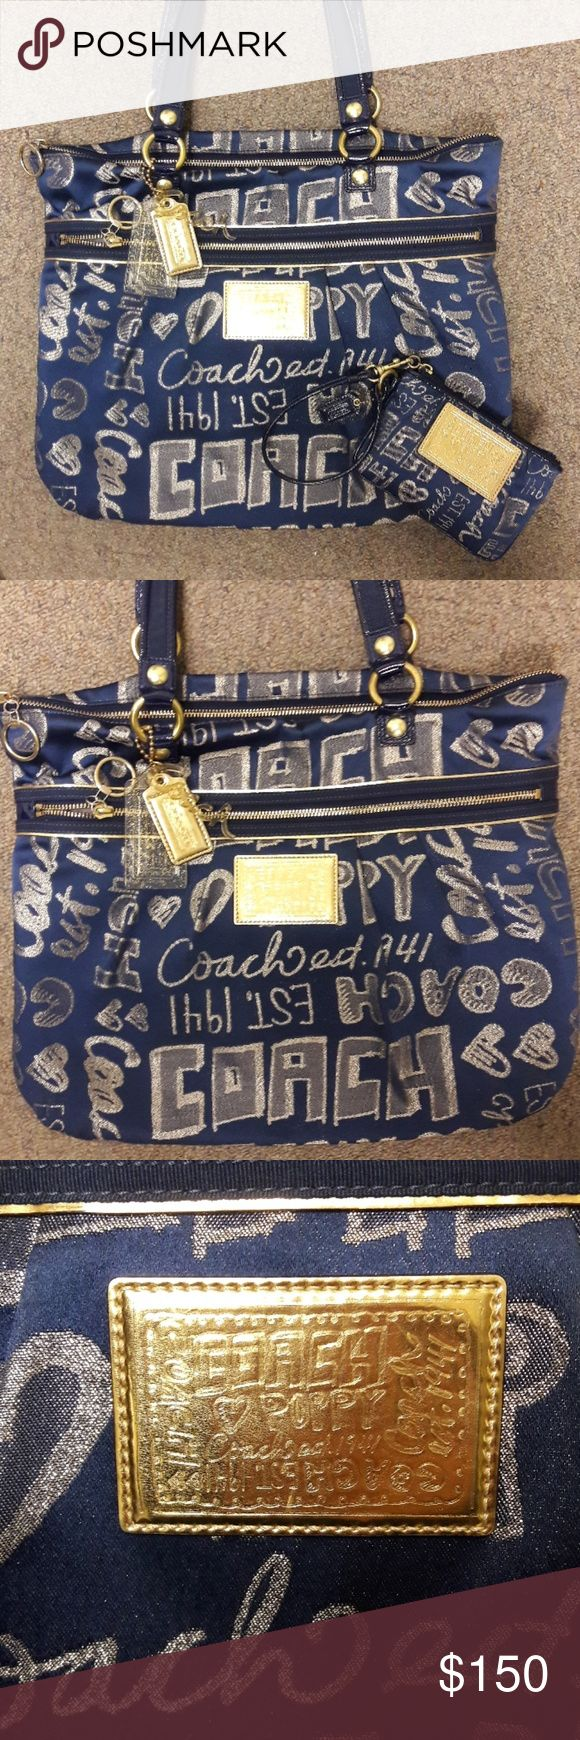 Coach Poppy Set Beautiful limited edition Coach Poppy purse and matching wristlet/wallet! Navy blue with shimmering gold storybook writing on both items! Gold zippers, navy blue leather straps! In excellent condition!! Any questions regarding details feel free to ask! Only reasonable offers welcome. Coach Bags